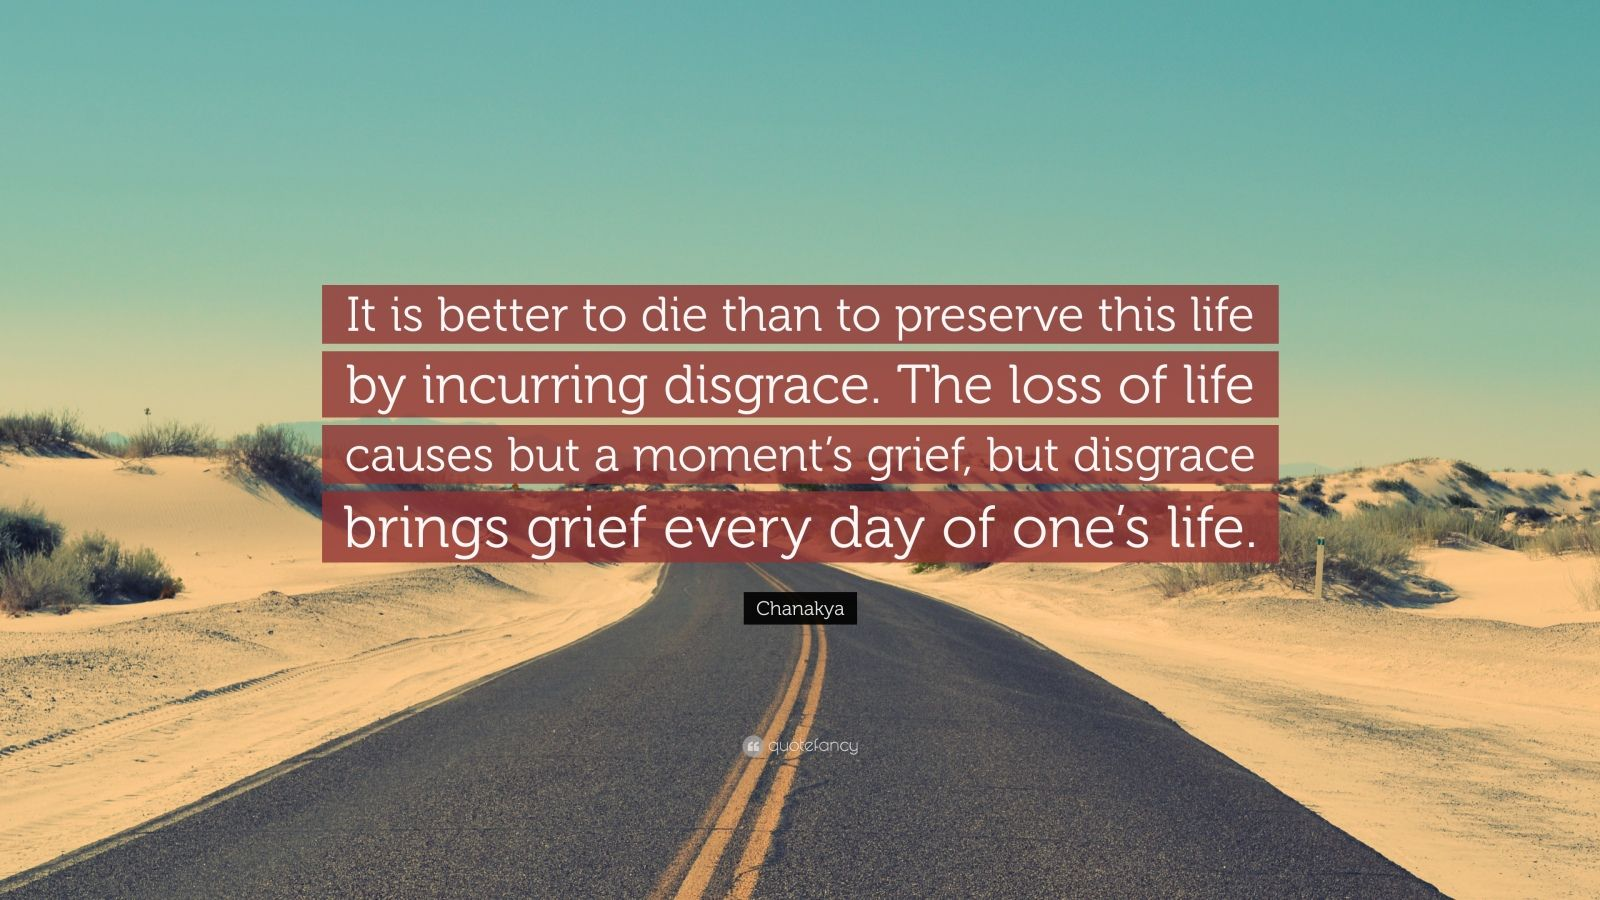 """Chanakya Quote: """"It is better to die than to preserve this life by incurring disgrace. The loss of life causes but a moment's grief, but disgrace brings grief every day of one's life."""""""